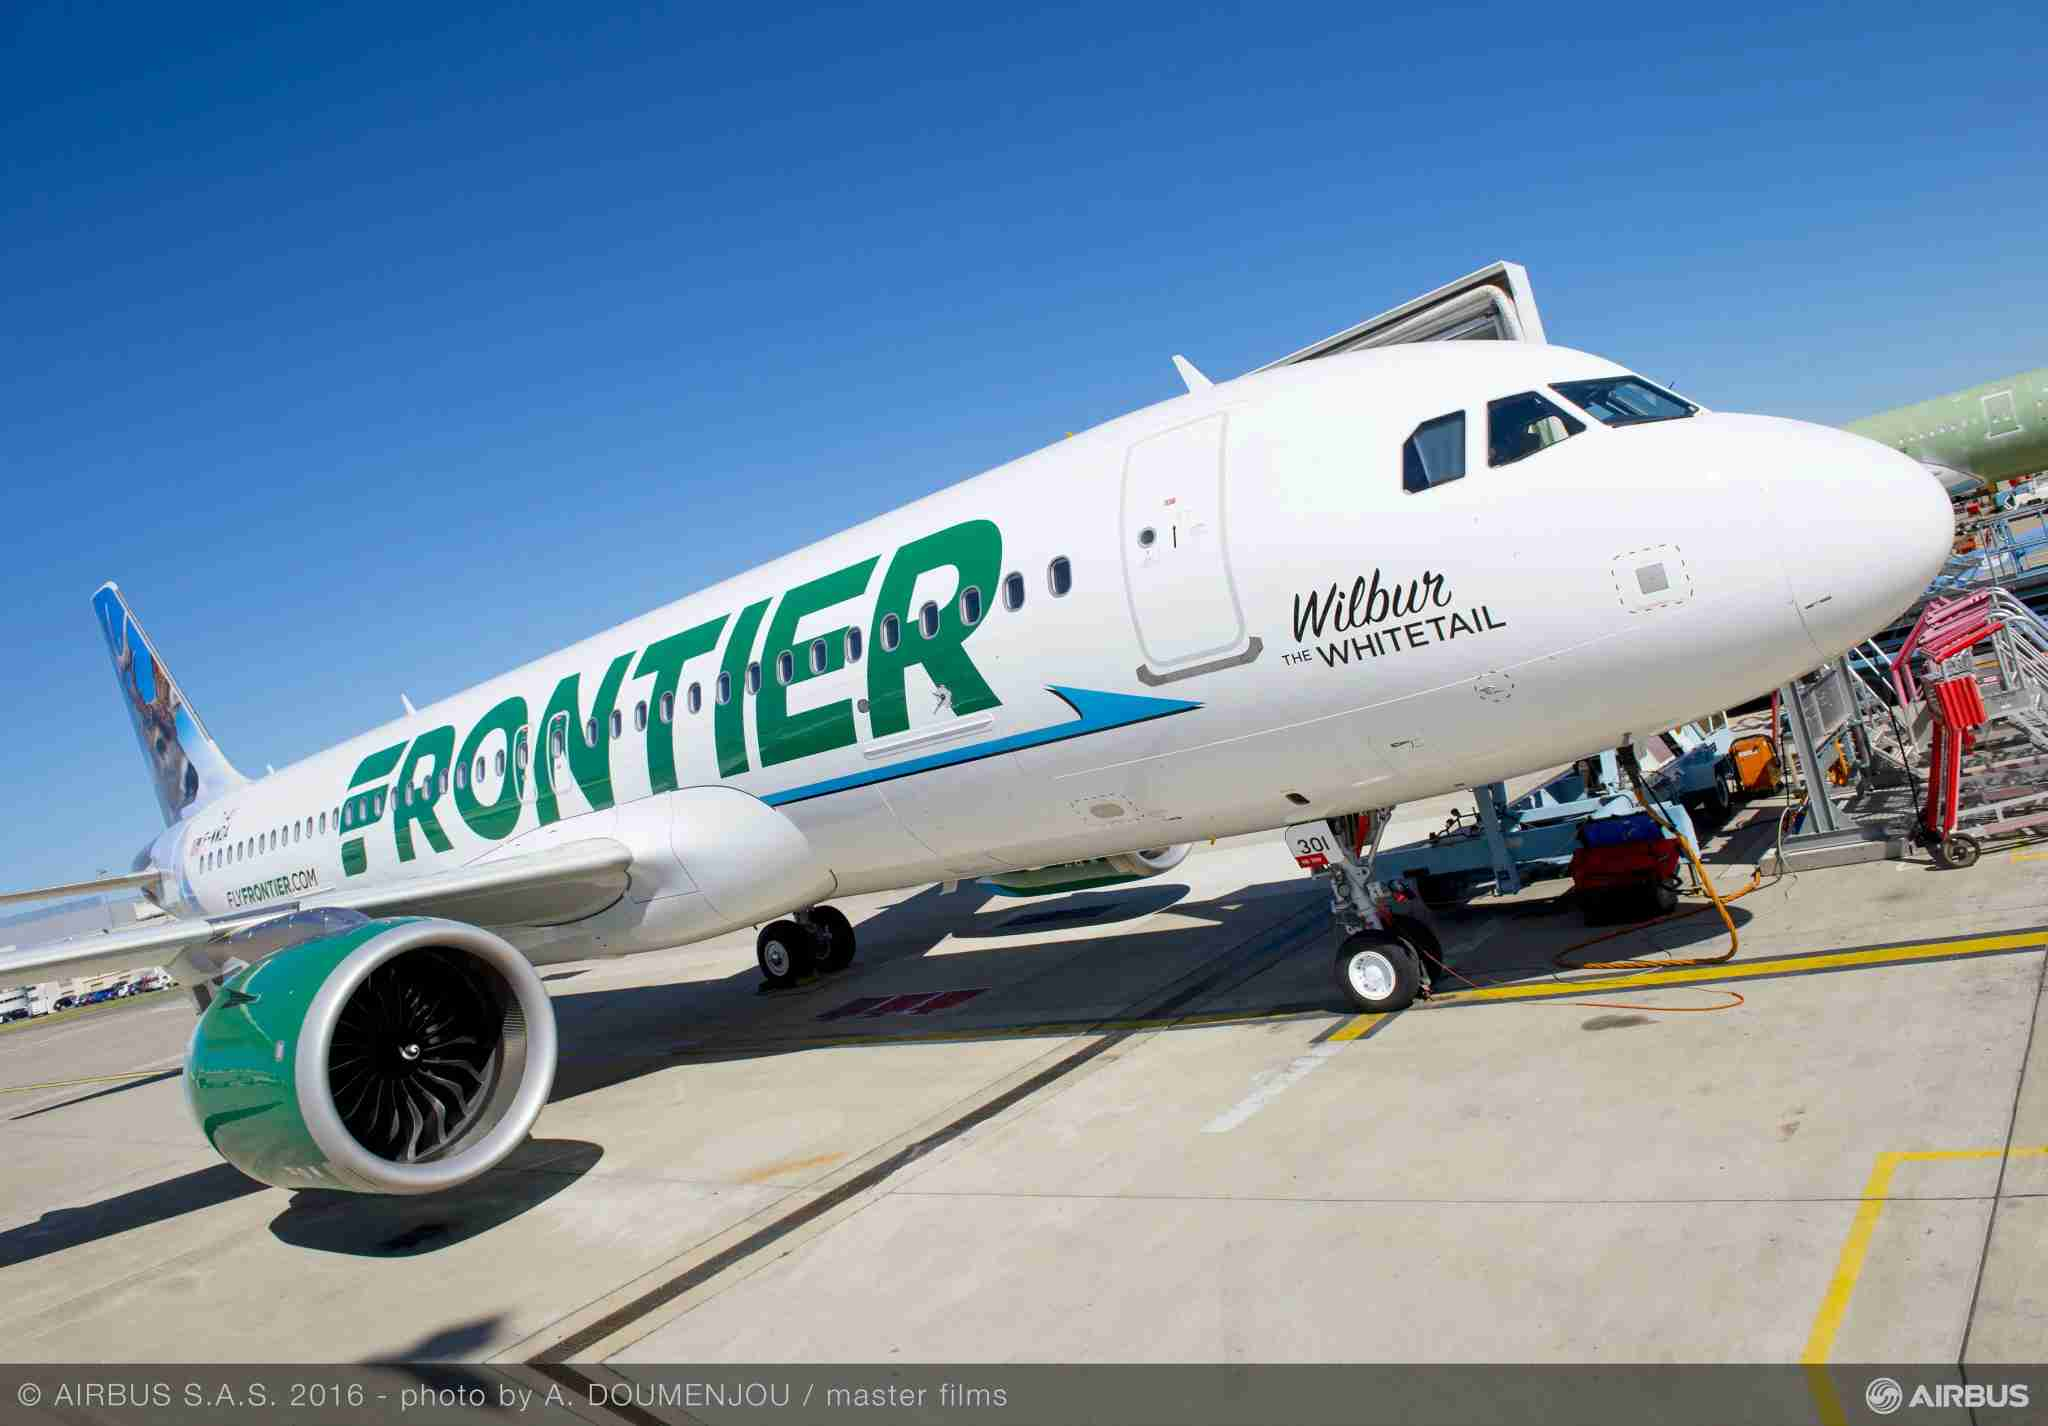 Frontier currently operates 43 Airbus A320neo aircraft with an additional 104 aircraft on order, down from 119. (Image courtesy of Airbus)